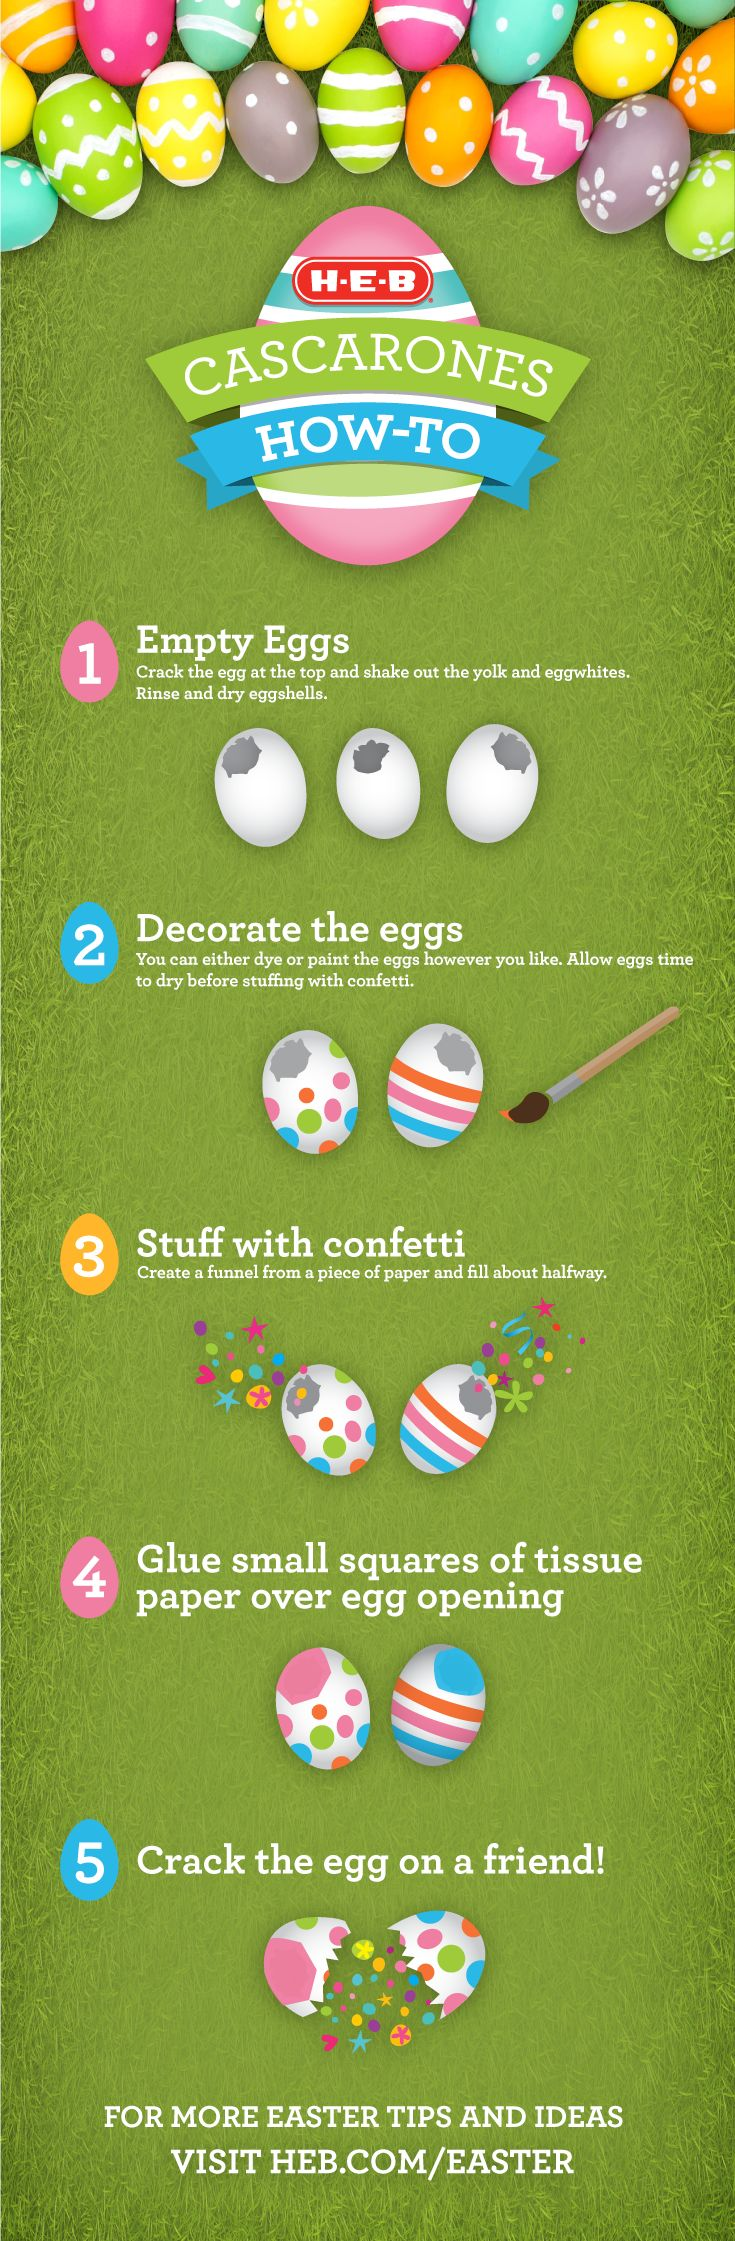 Release the confetti on your Easter guests with our 5 step guide to making Cascarones (confetti-filled eggs). Find even more Easter celebration ideas, crafts, and recipes at heb.com/easter.